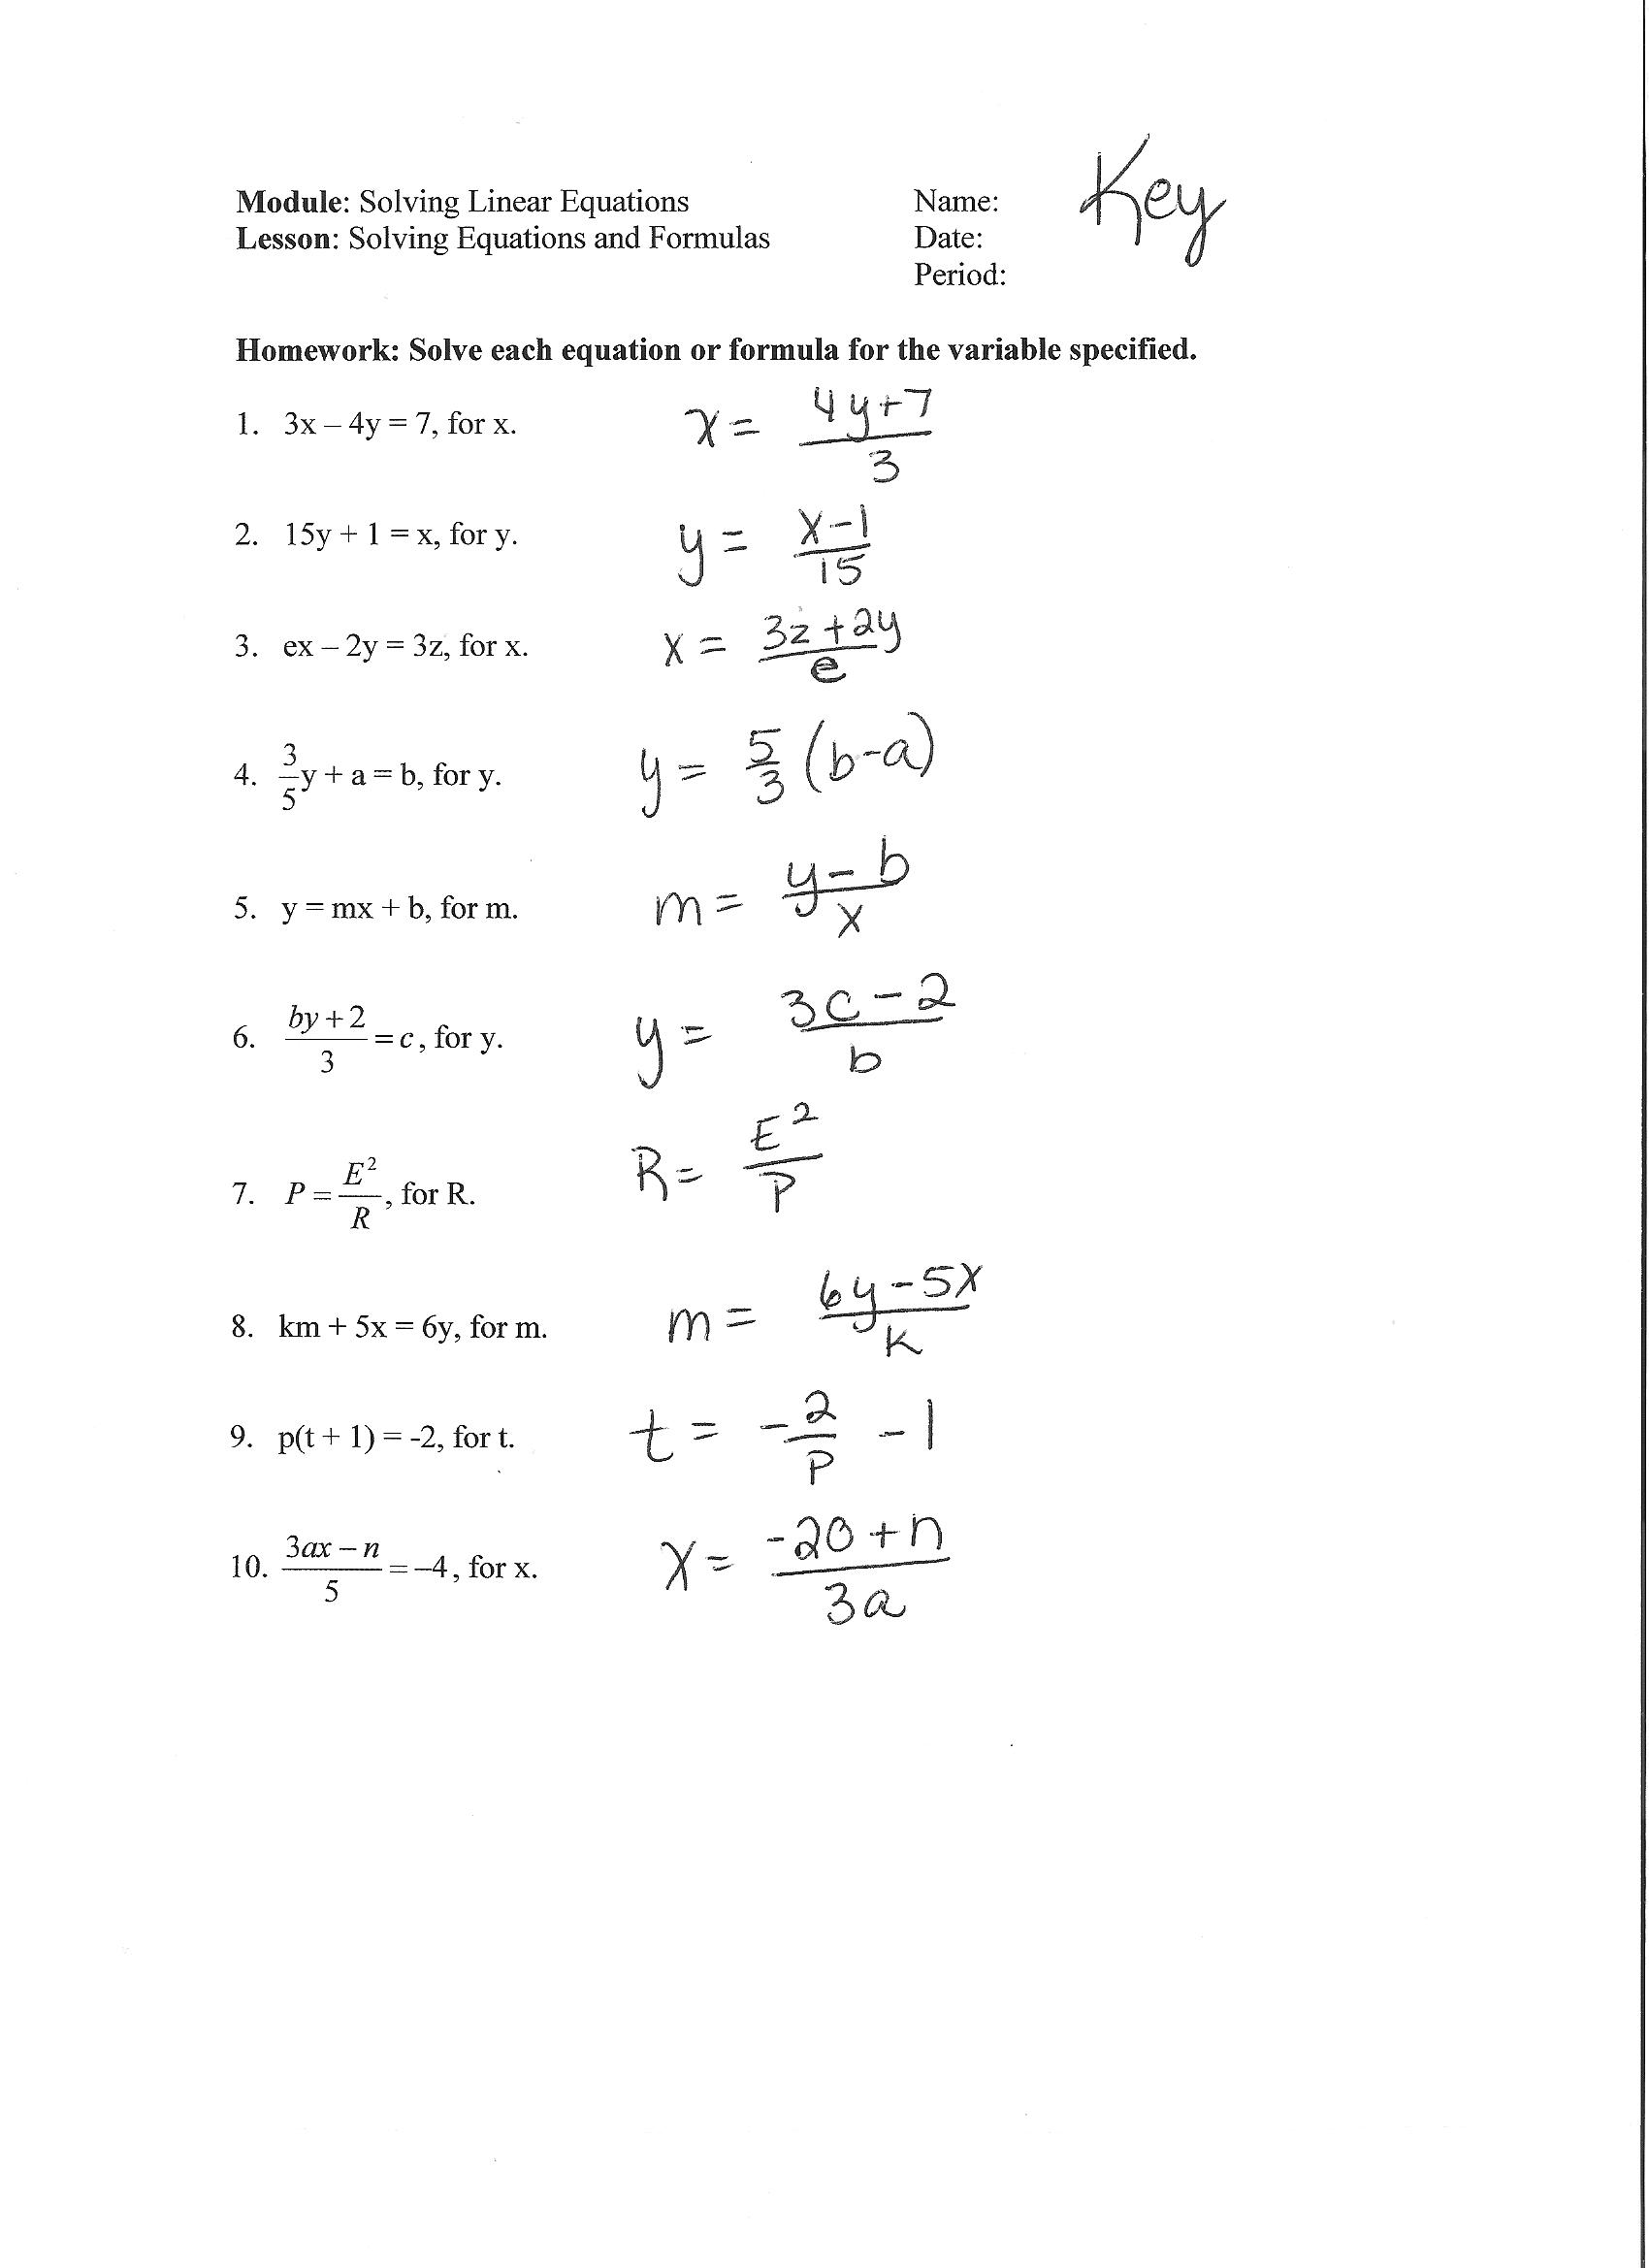 Printables Solve The Equations Worksheet solving equations printable worksheets imperialdesignstudio 2338 167 kb jpeg with answers